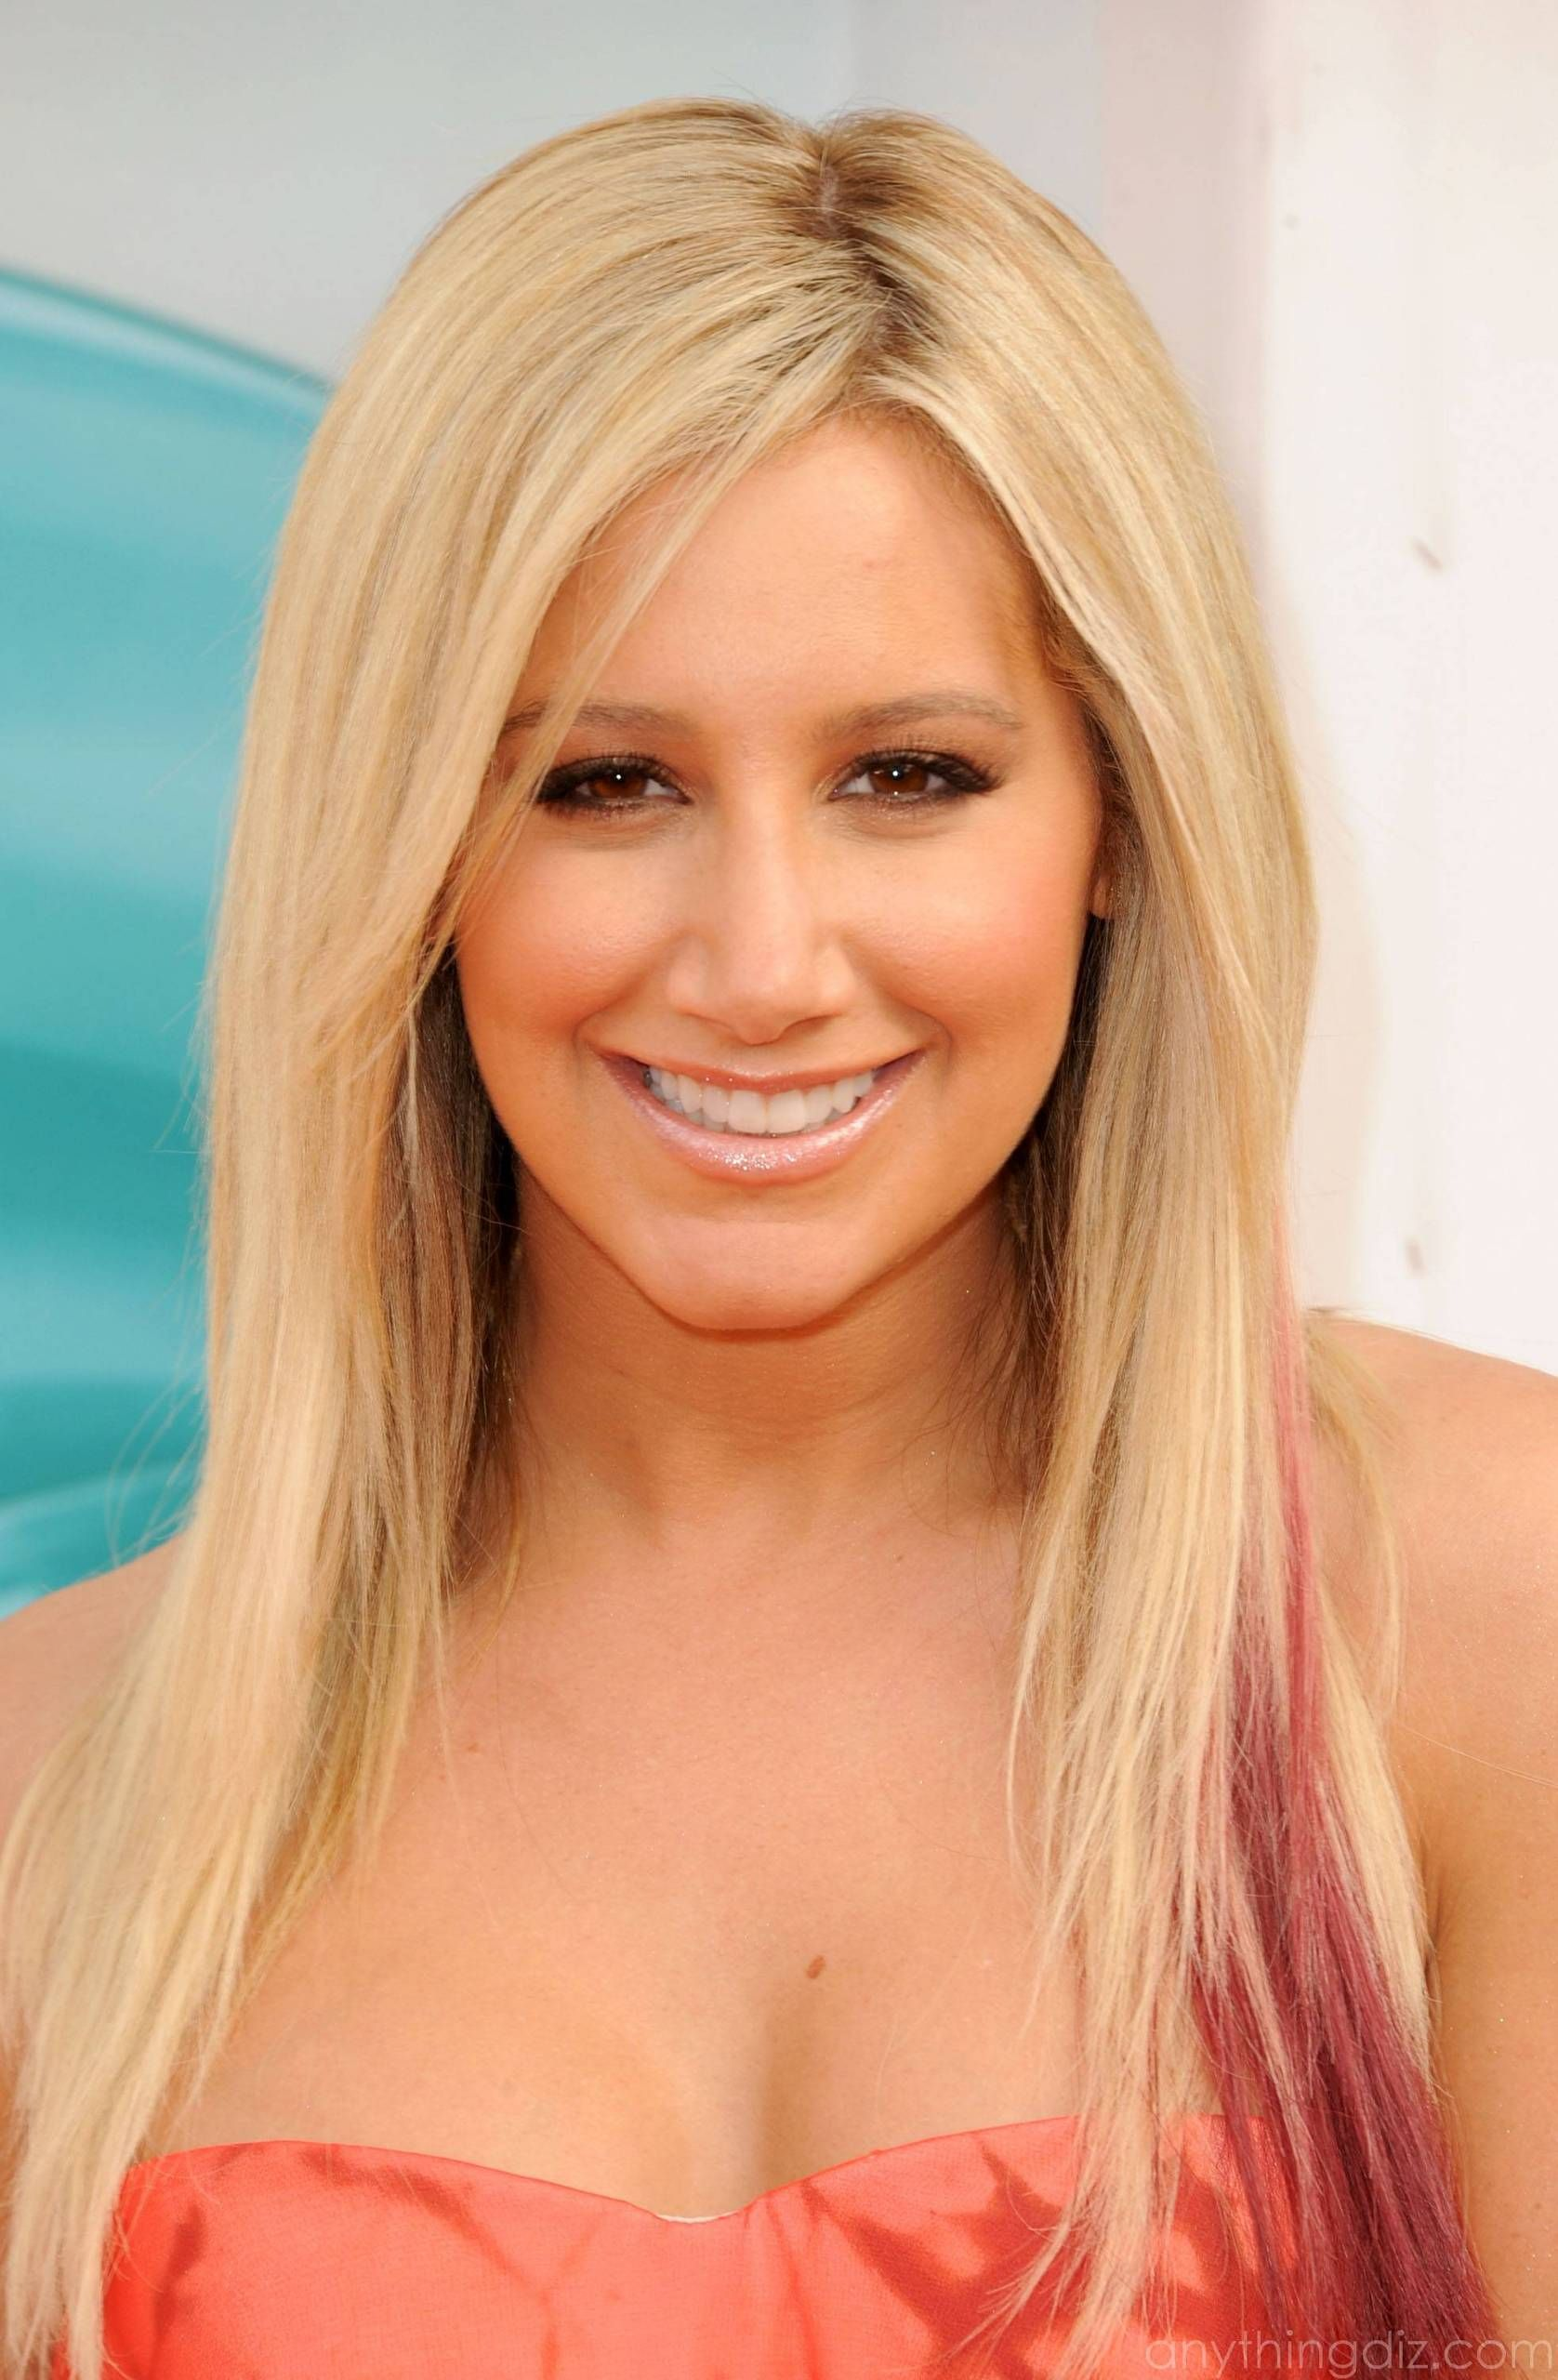 Cute Braided Hairstyles: Ashley Tisdale Hair Cute Braided Hairstyles: Ashley Tisdale Hair new photo